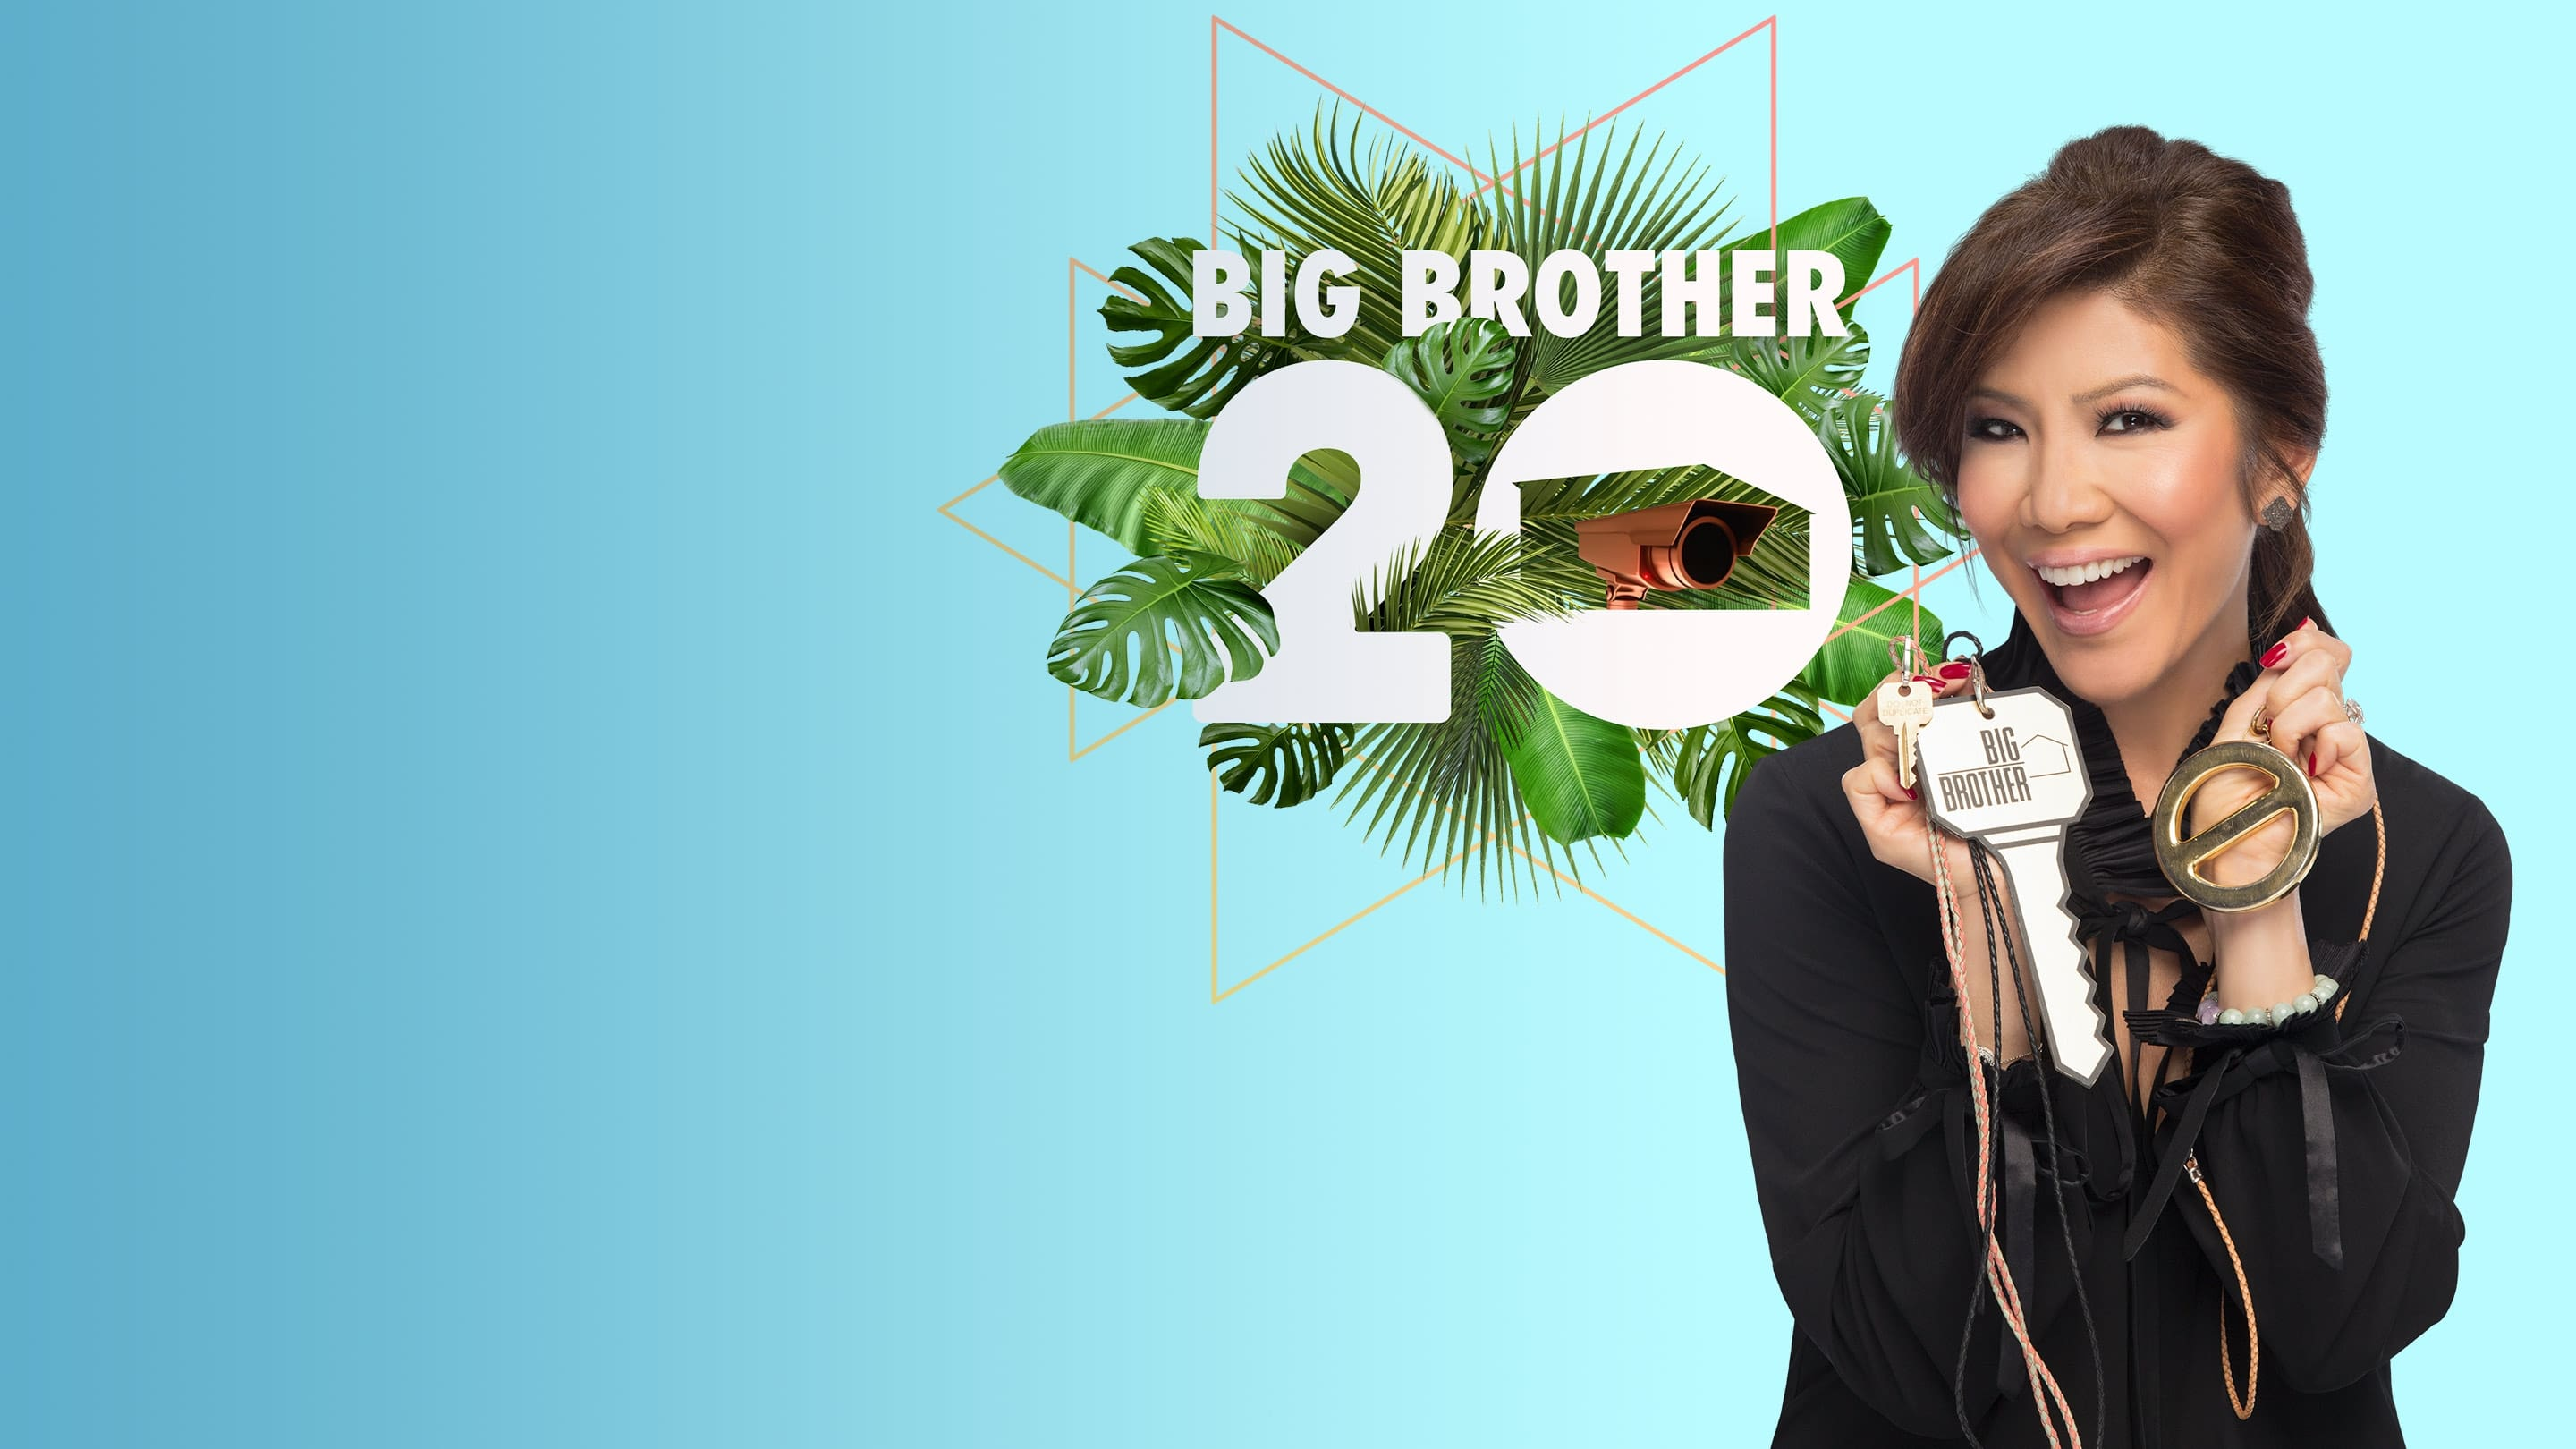 Big Brother - Season 1